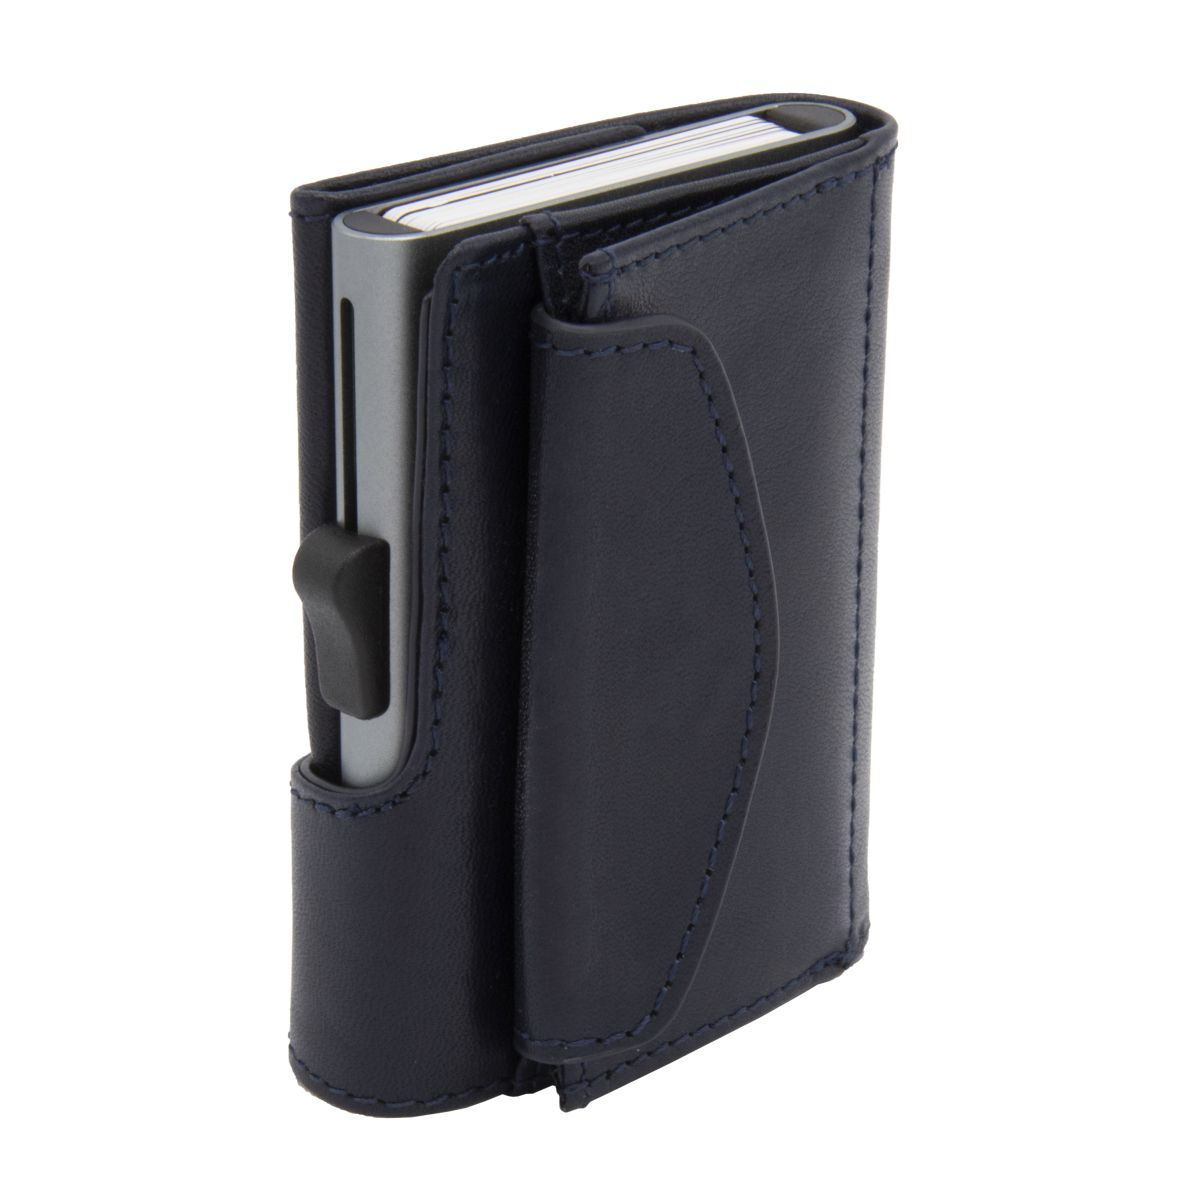 C-Secure XL Aluminum Wallet with Genuine Leather and Coins Pocket - Blue Montana